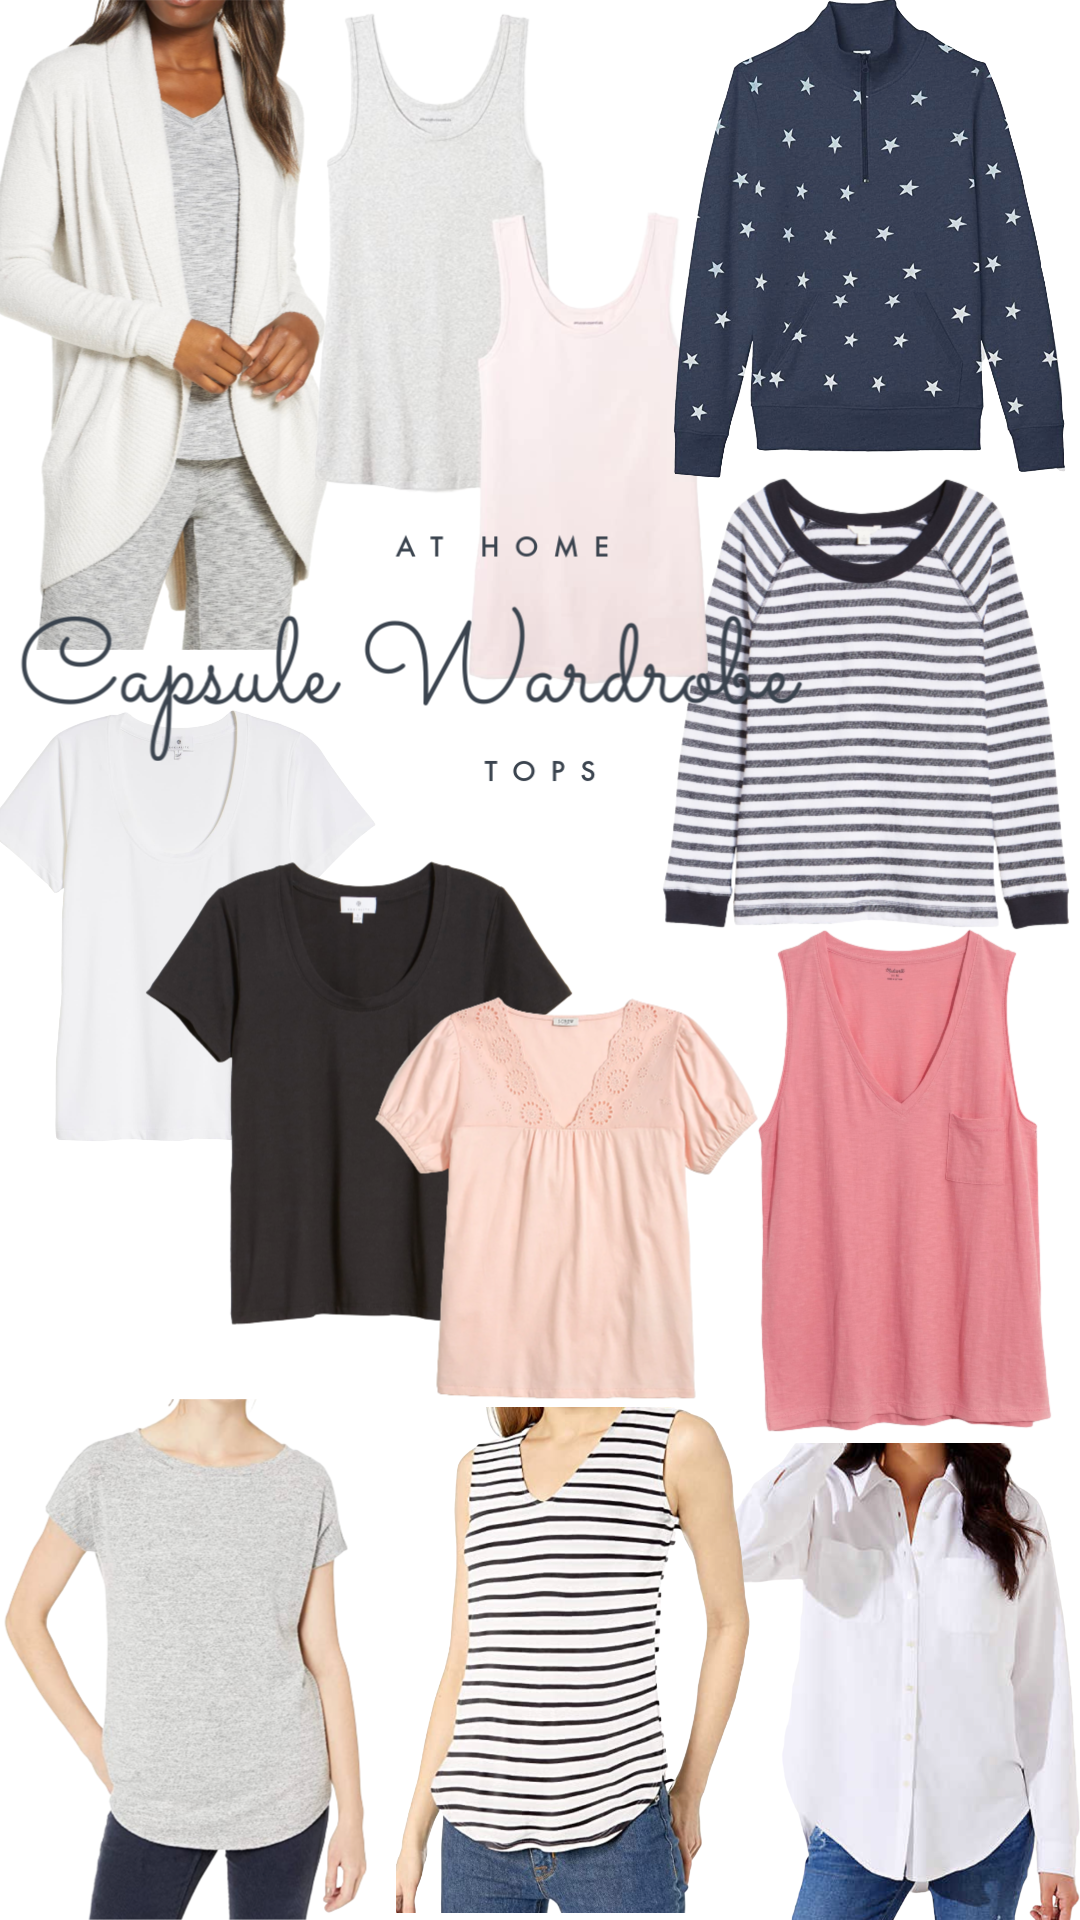 Capsule Wardrobe At Home Tops